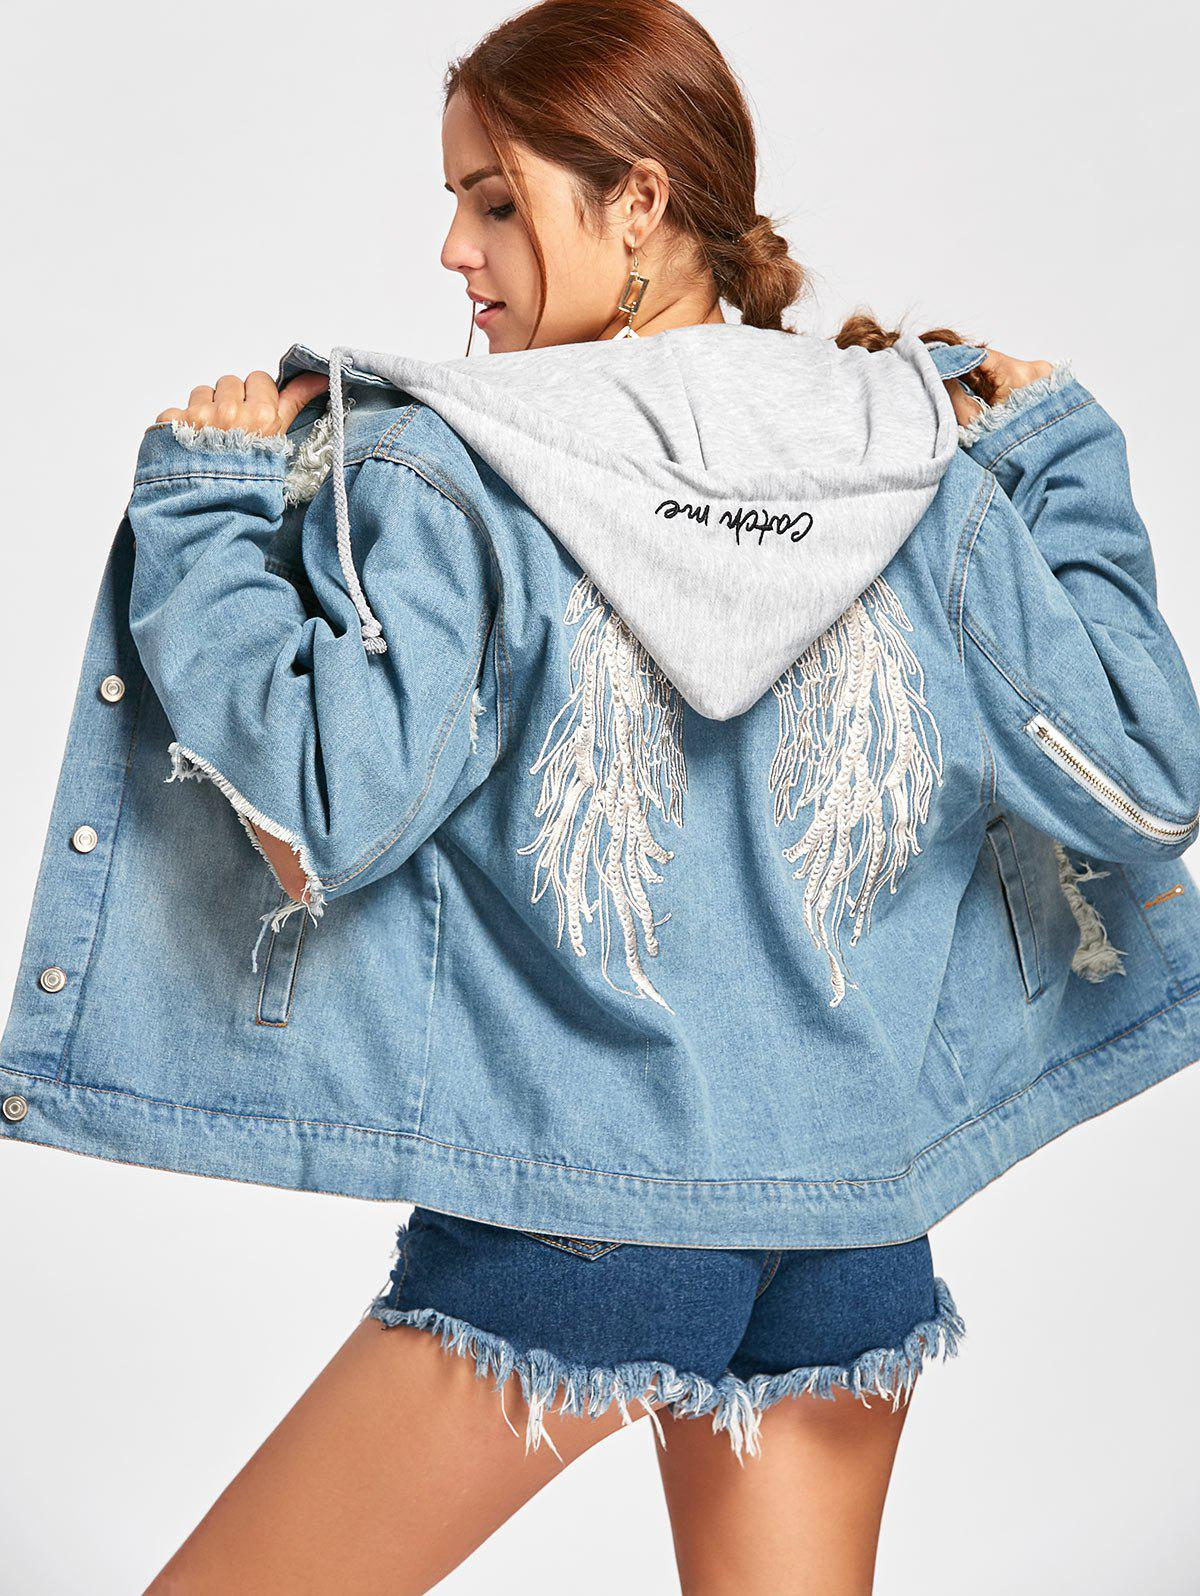 Store Wing Embroidery Distressed Denim Hooded Jacket